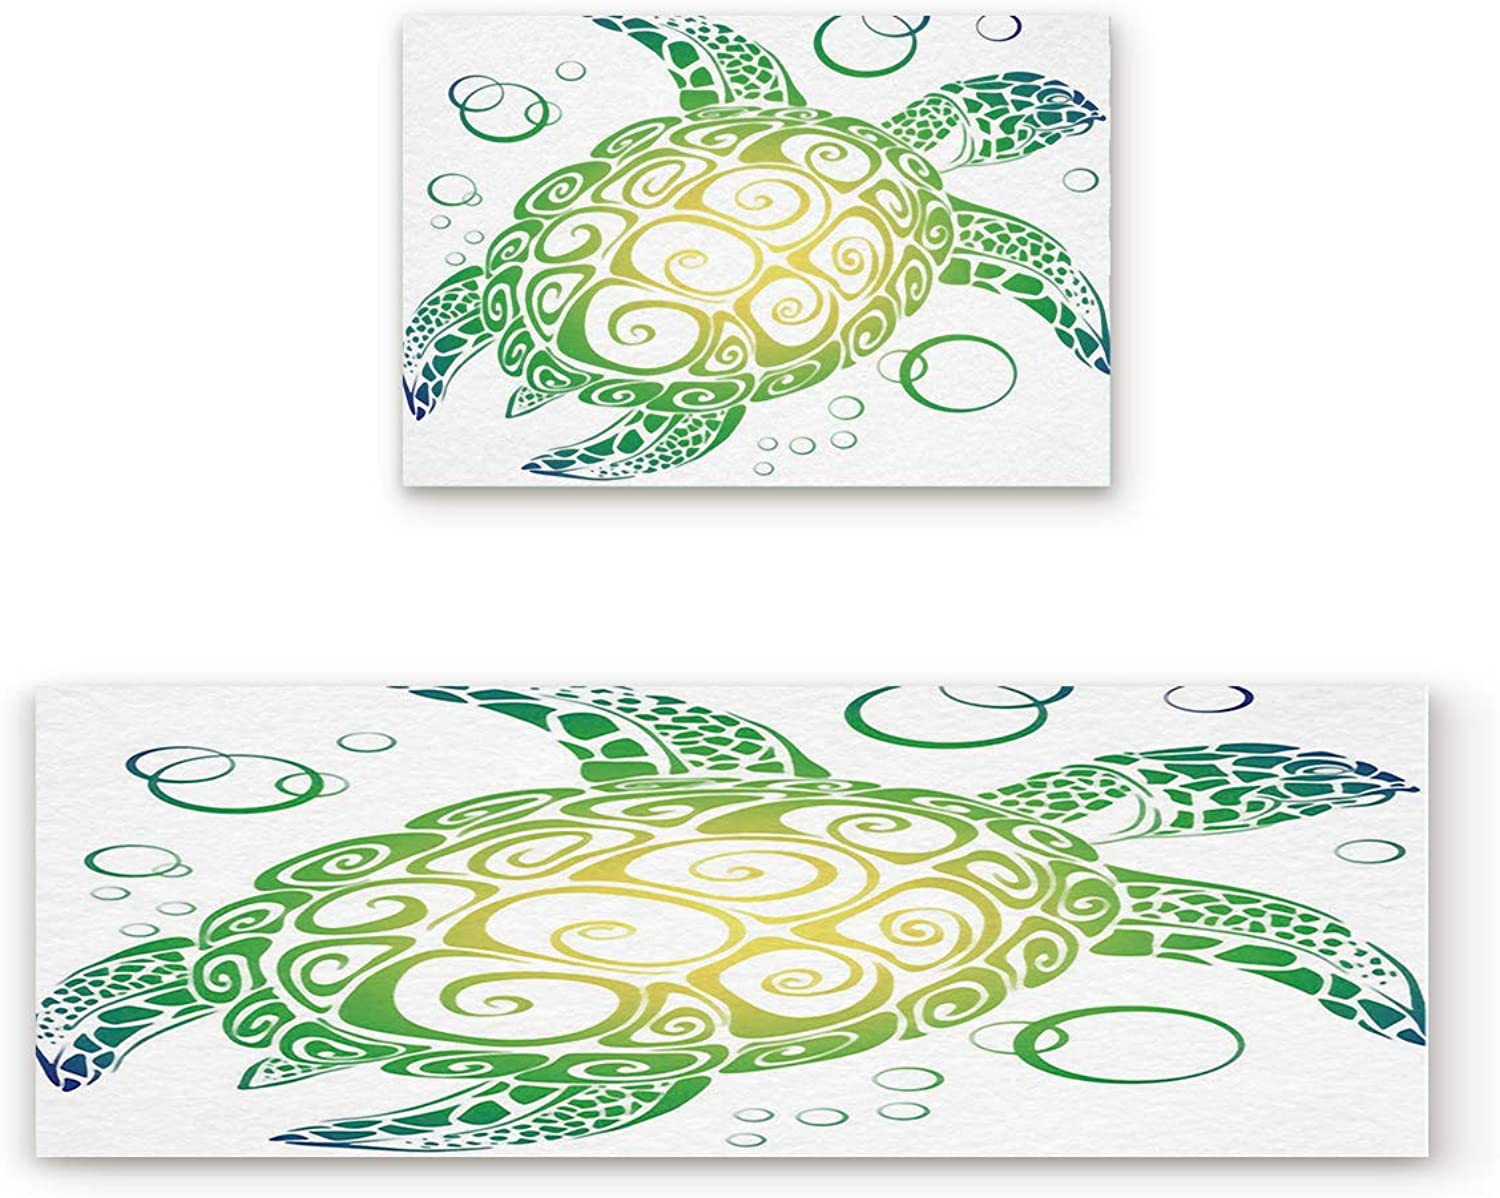 KAROLA 2 Piece Non-Slip Kitchen Mat Doormat Runner Rug Set Thin Low Pile Indoor Area Rugs Green Sea Turtle Design 19.7 x31.5 +19.7 x63